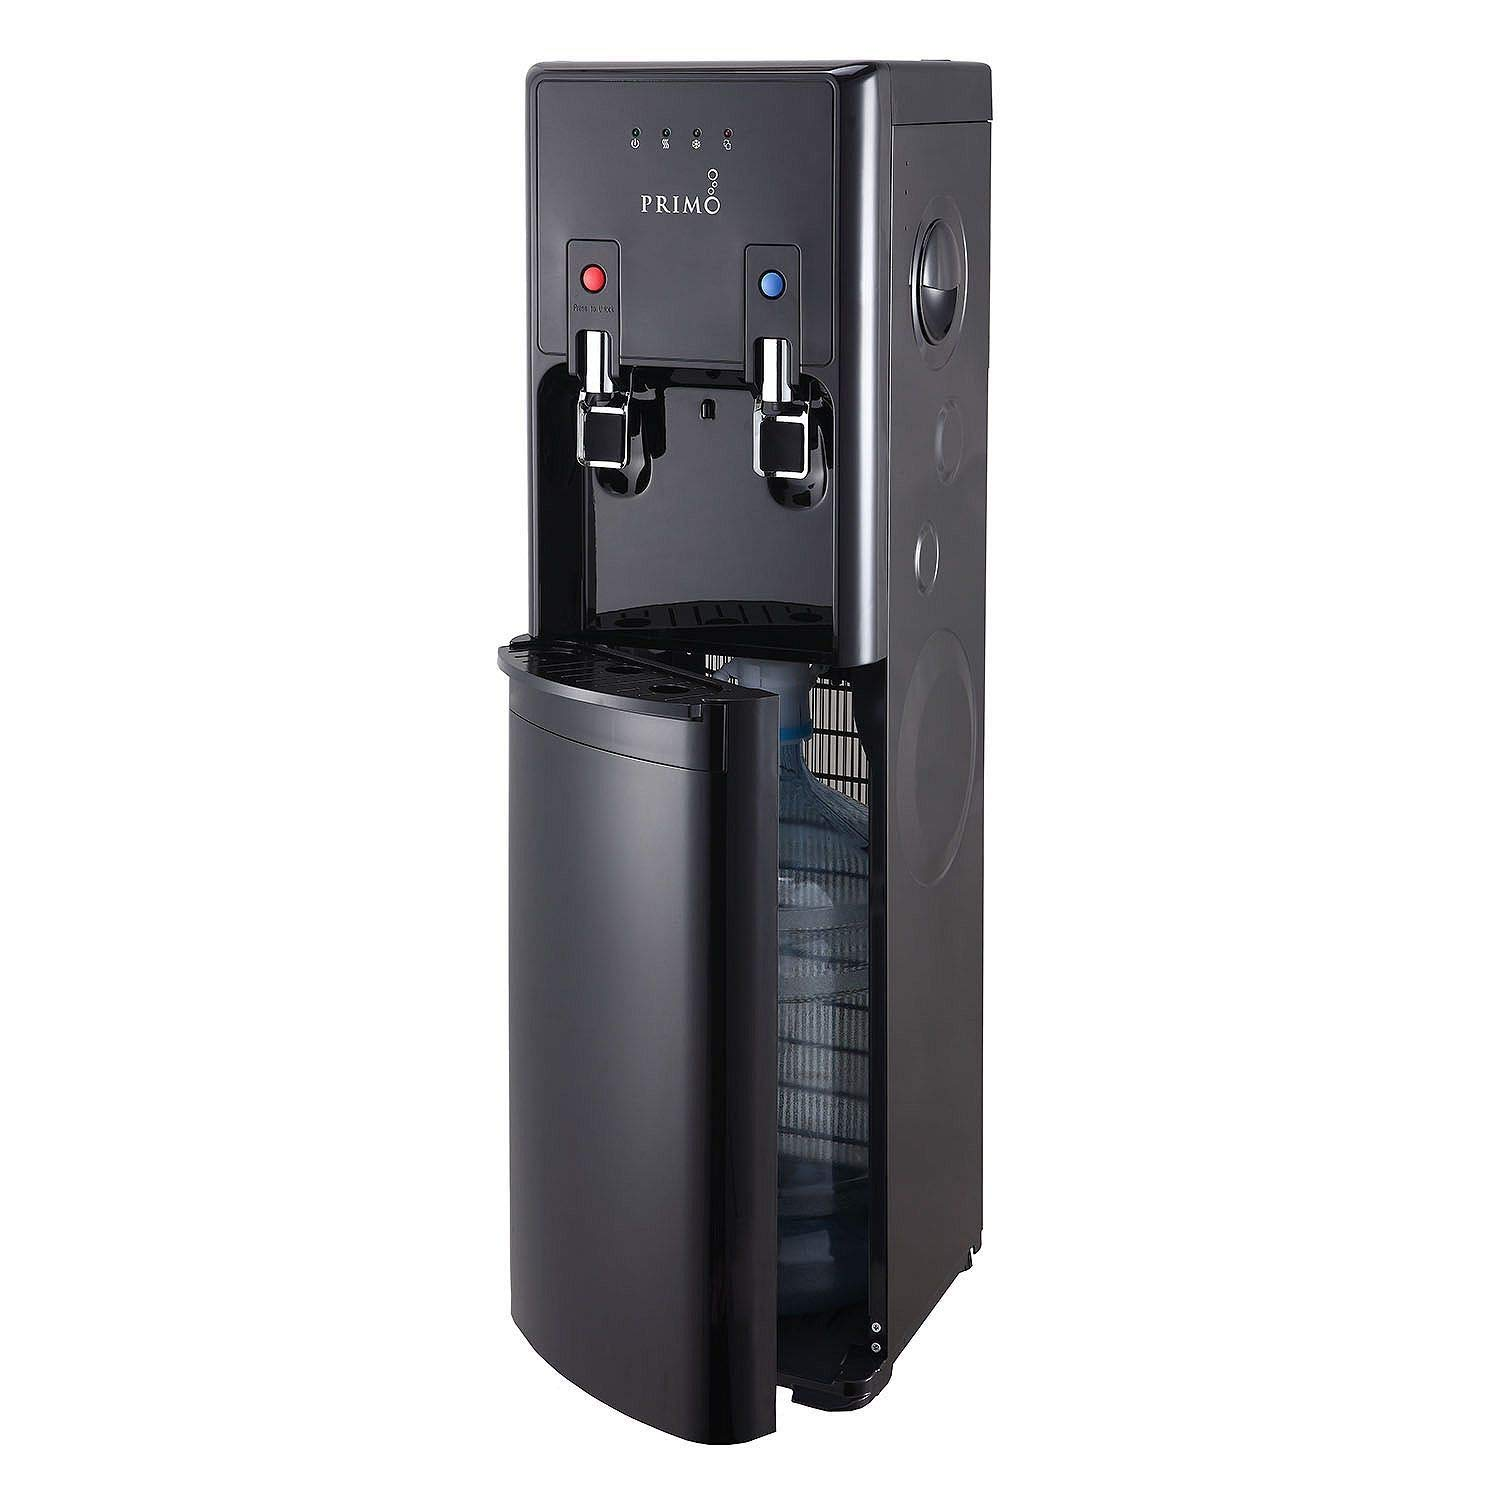 Primo 601213 Pro-Plus Bottom-Load Hot Cold Water Dispenser, Black